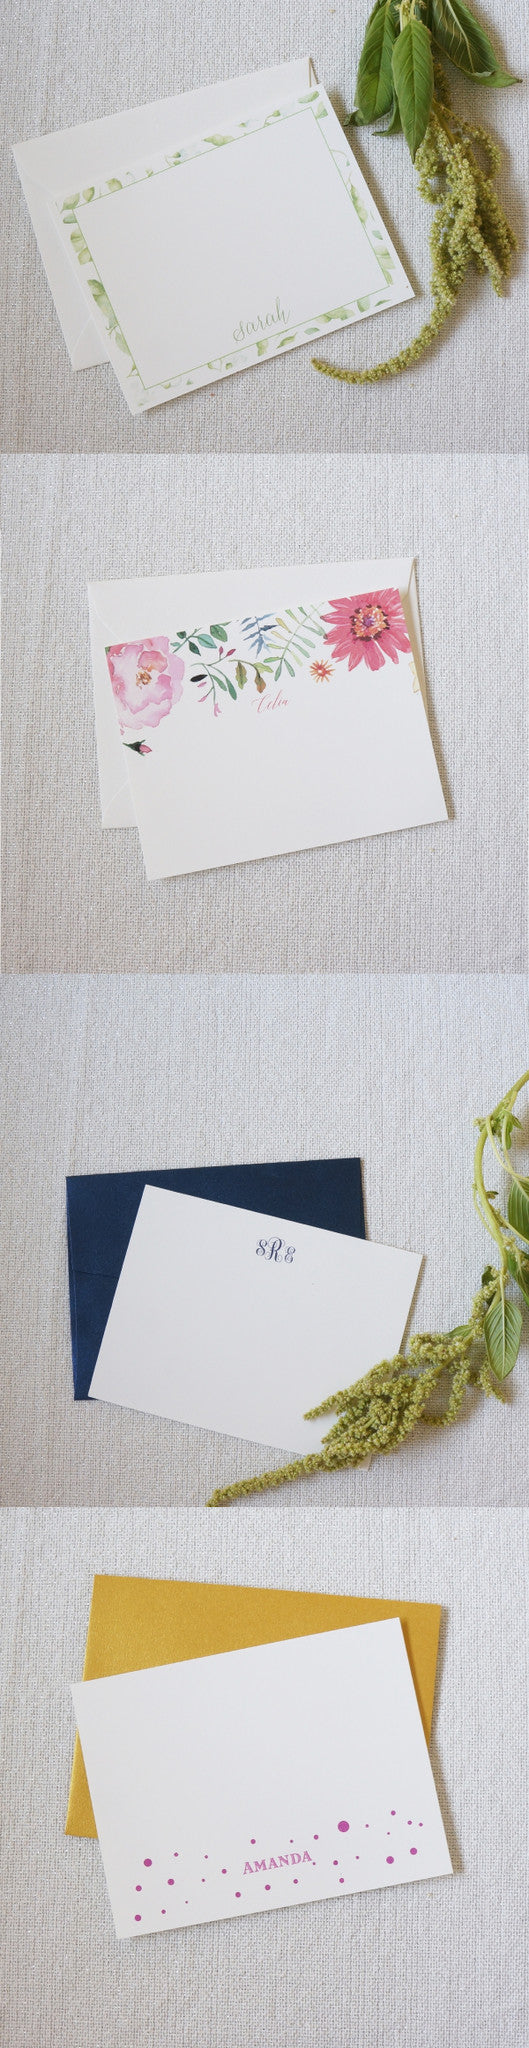 gift idea: personalized stationery